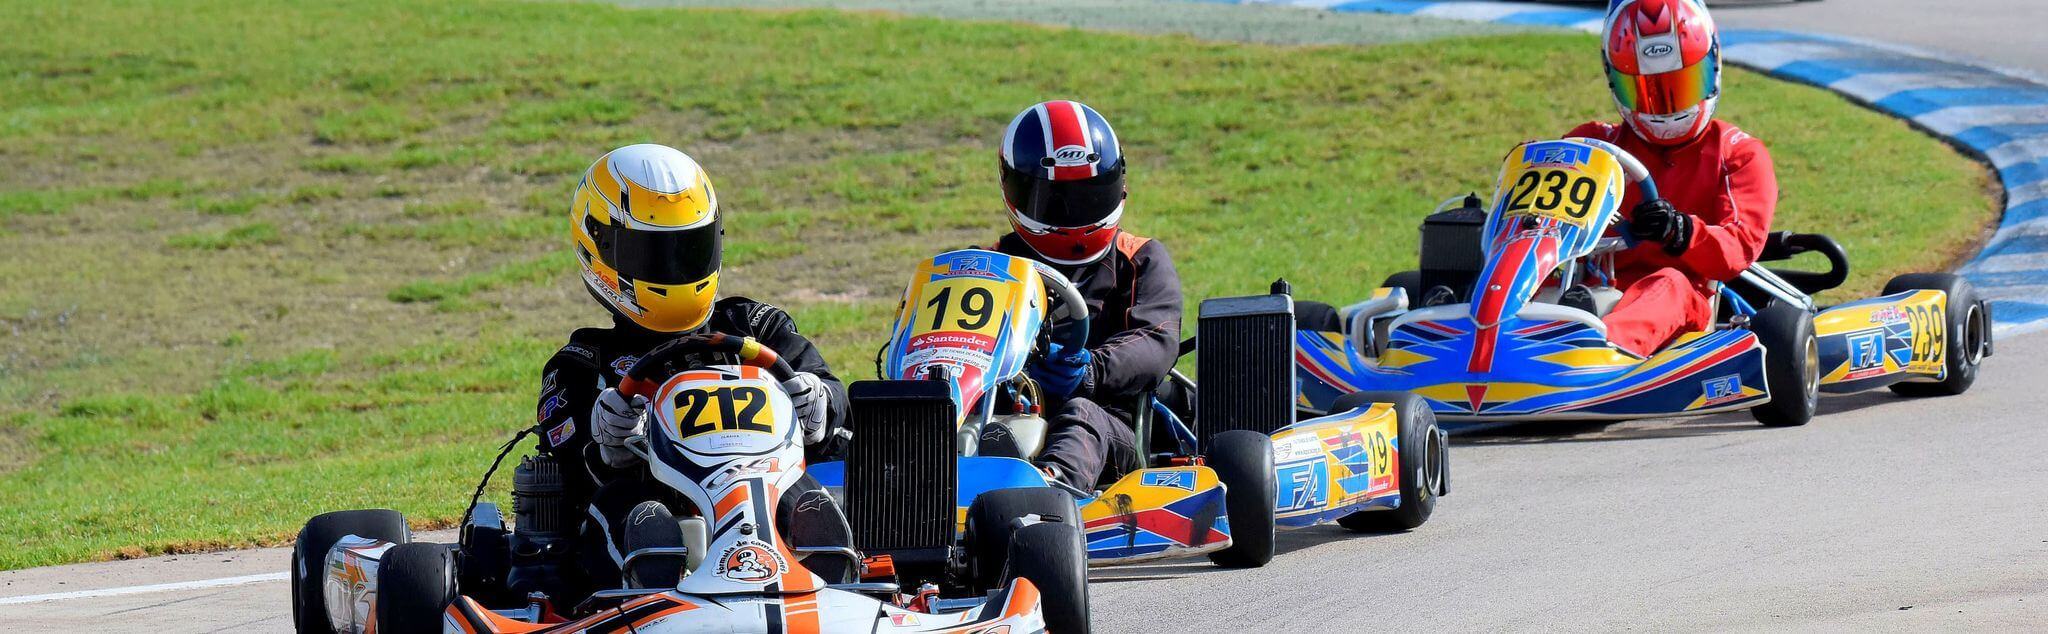 Karting in Mallorca